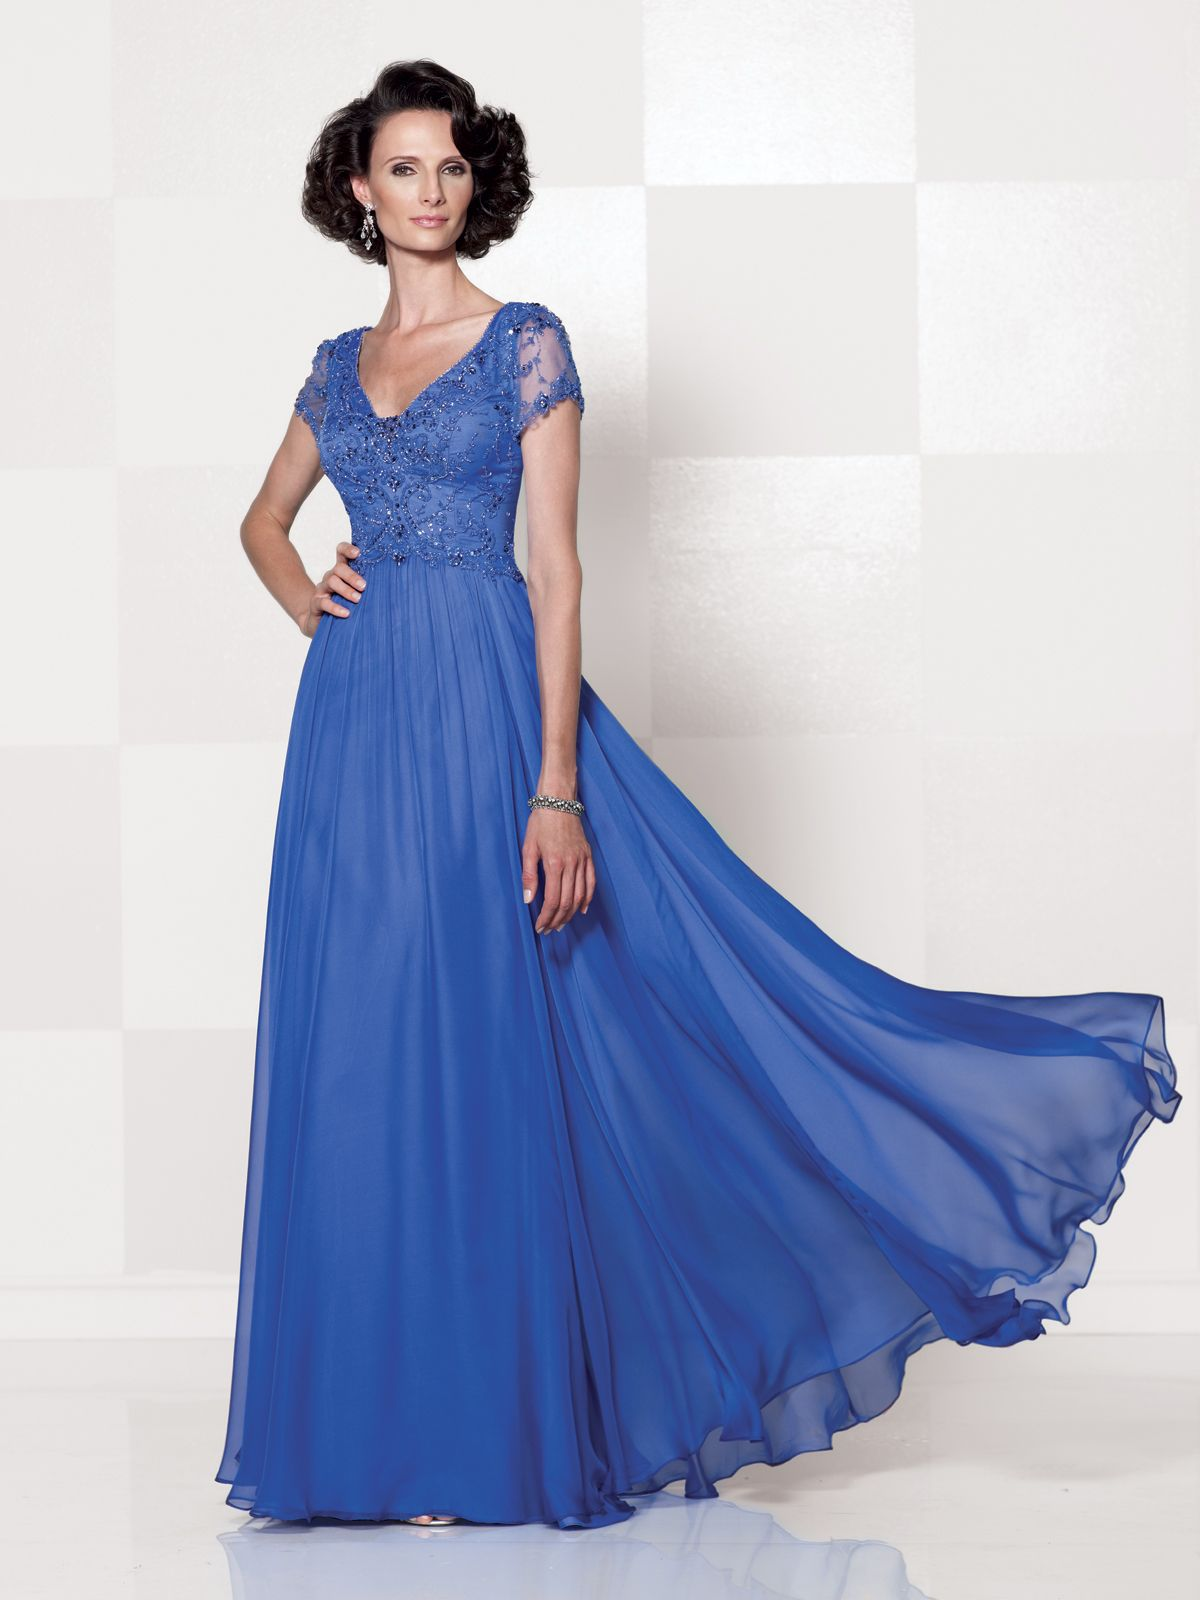 cameron blake mother of the bride dresses & dress suits 2017